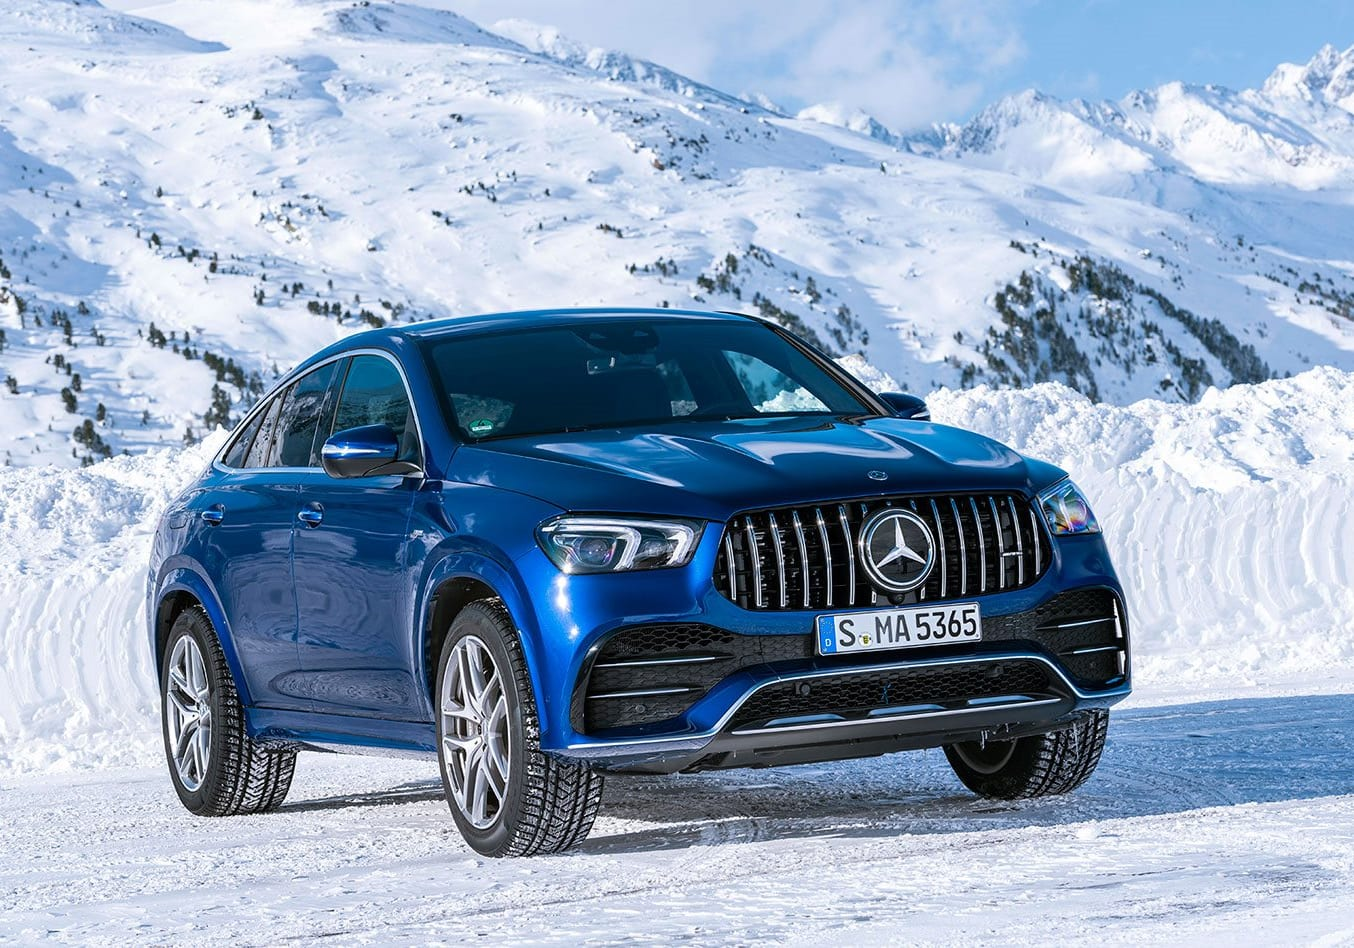 2020 Mercedes-AMG GLE53 4MATIC Coupe Review